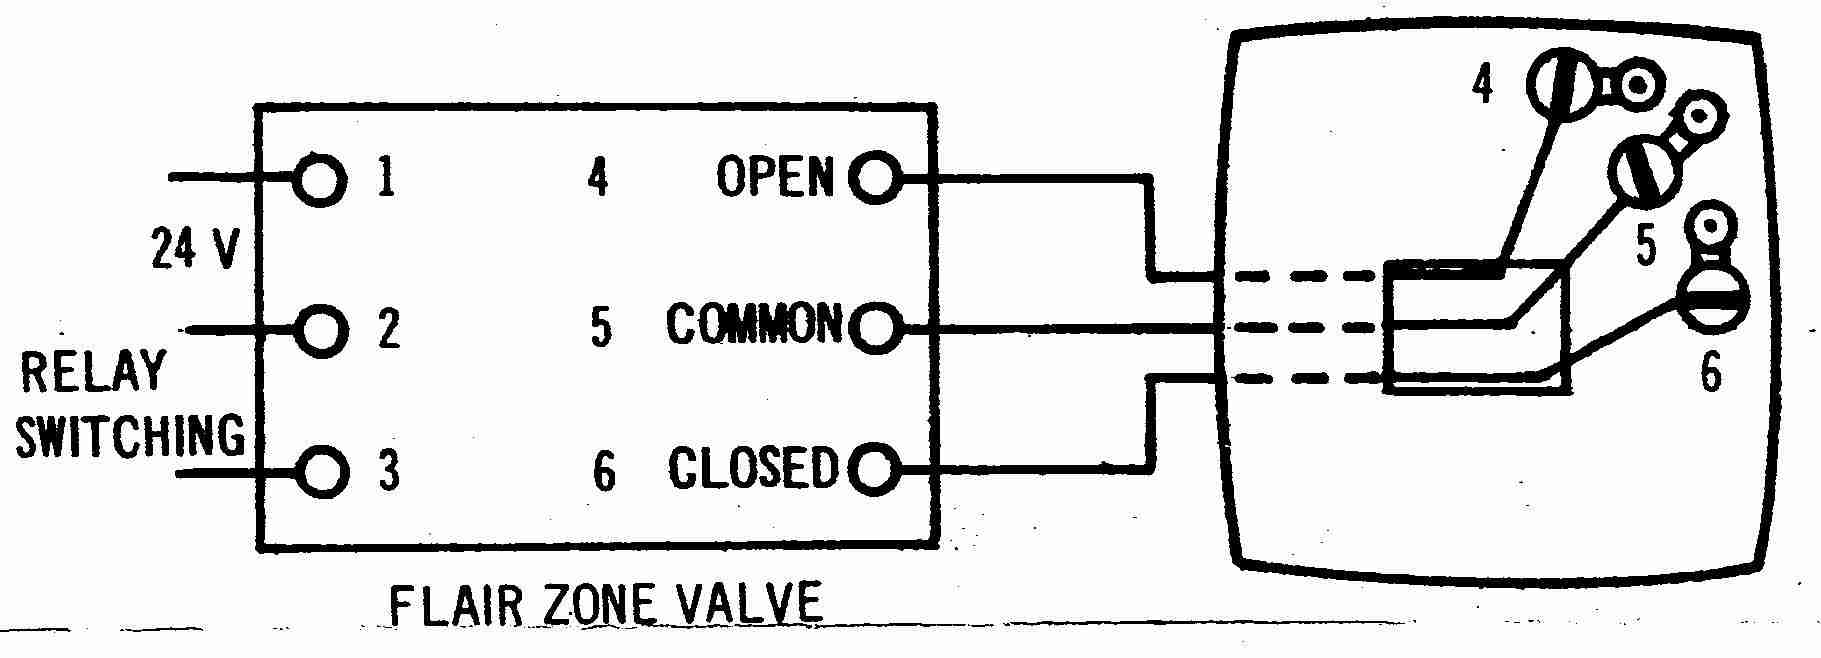 Room Thermostat Wiring Diagrams For Hvac Systems Honeywell Ct410b Diagram Custom Flair 3 Wire Controlling A Zone Valve